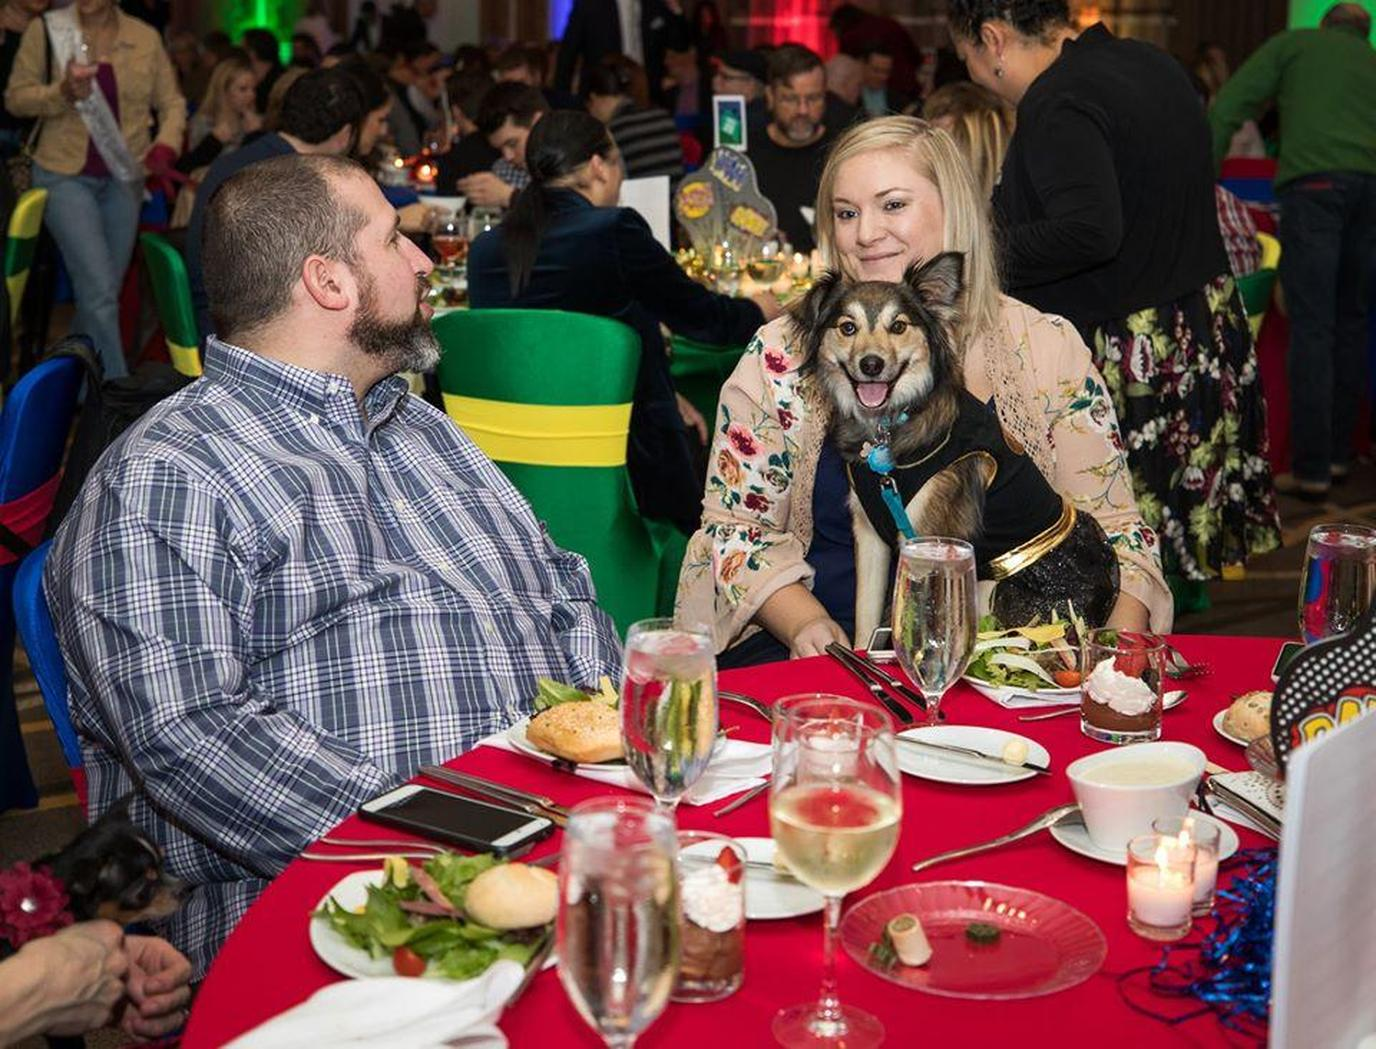 A Couple Has Dinner With Their Dogs During a Pet-Friendly Event in Nashville.